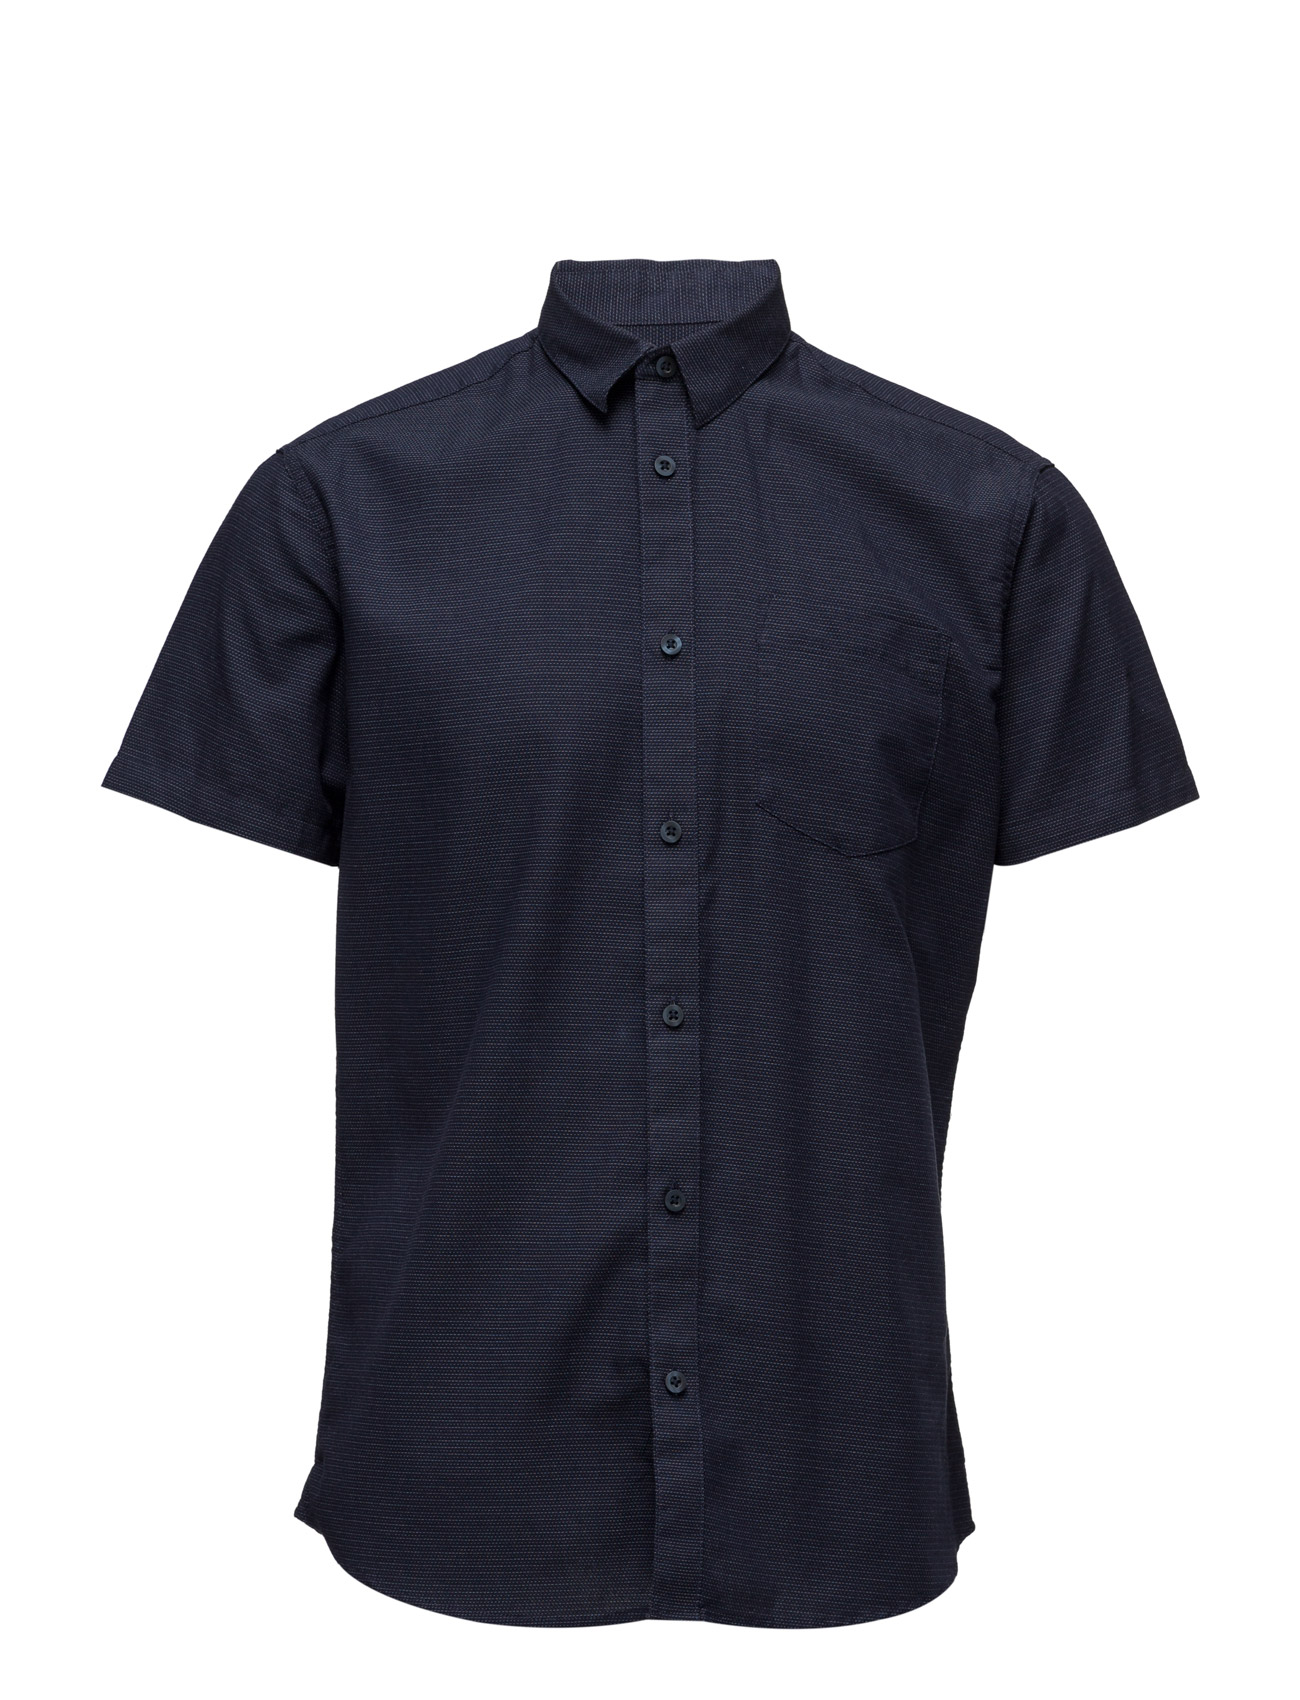 Shdoneclive Shirt Ss Selected Homme Kort-Hylsa